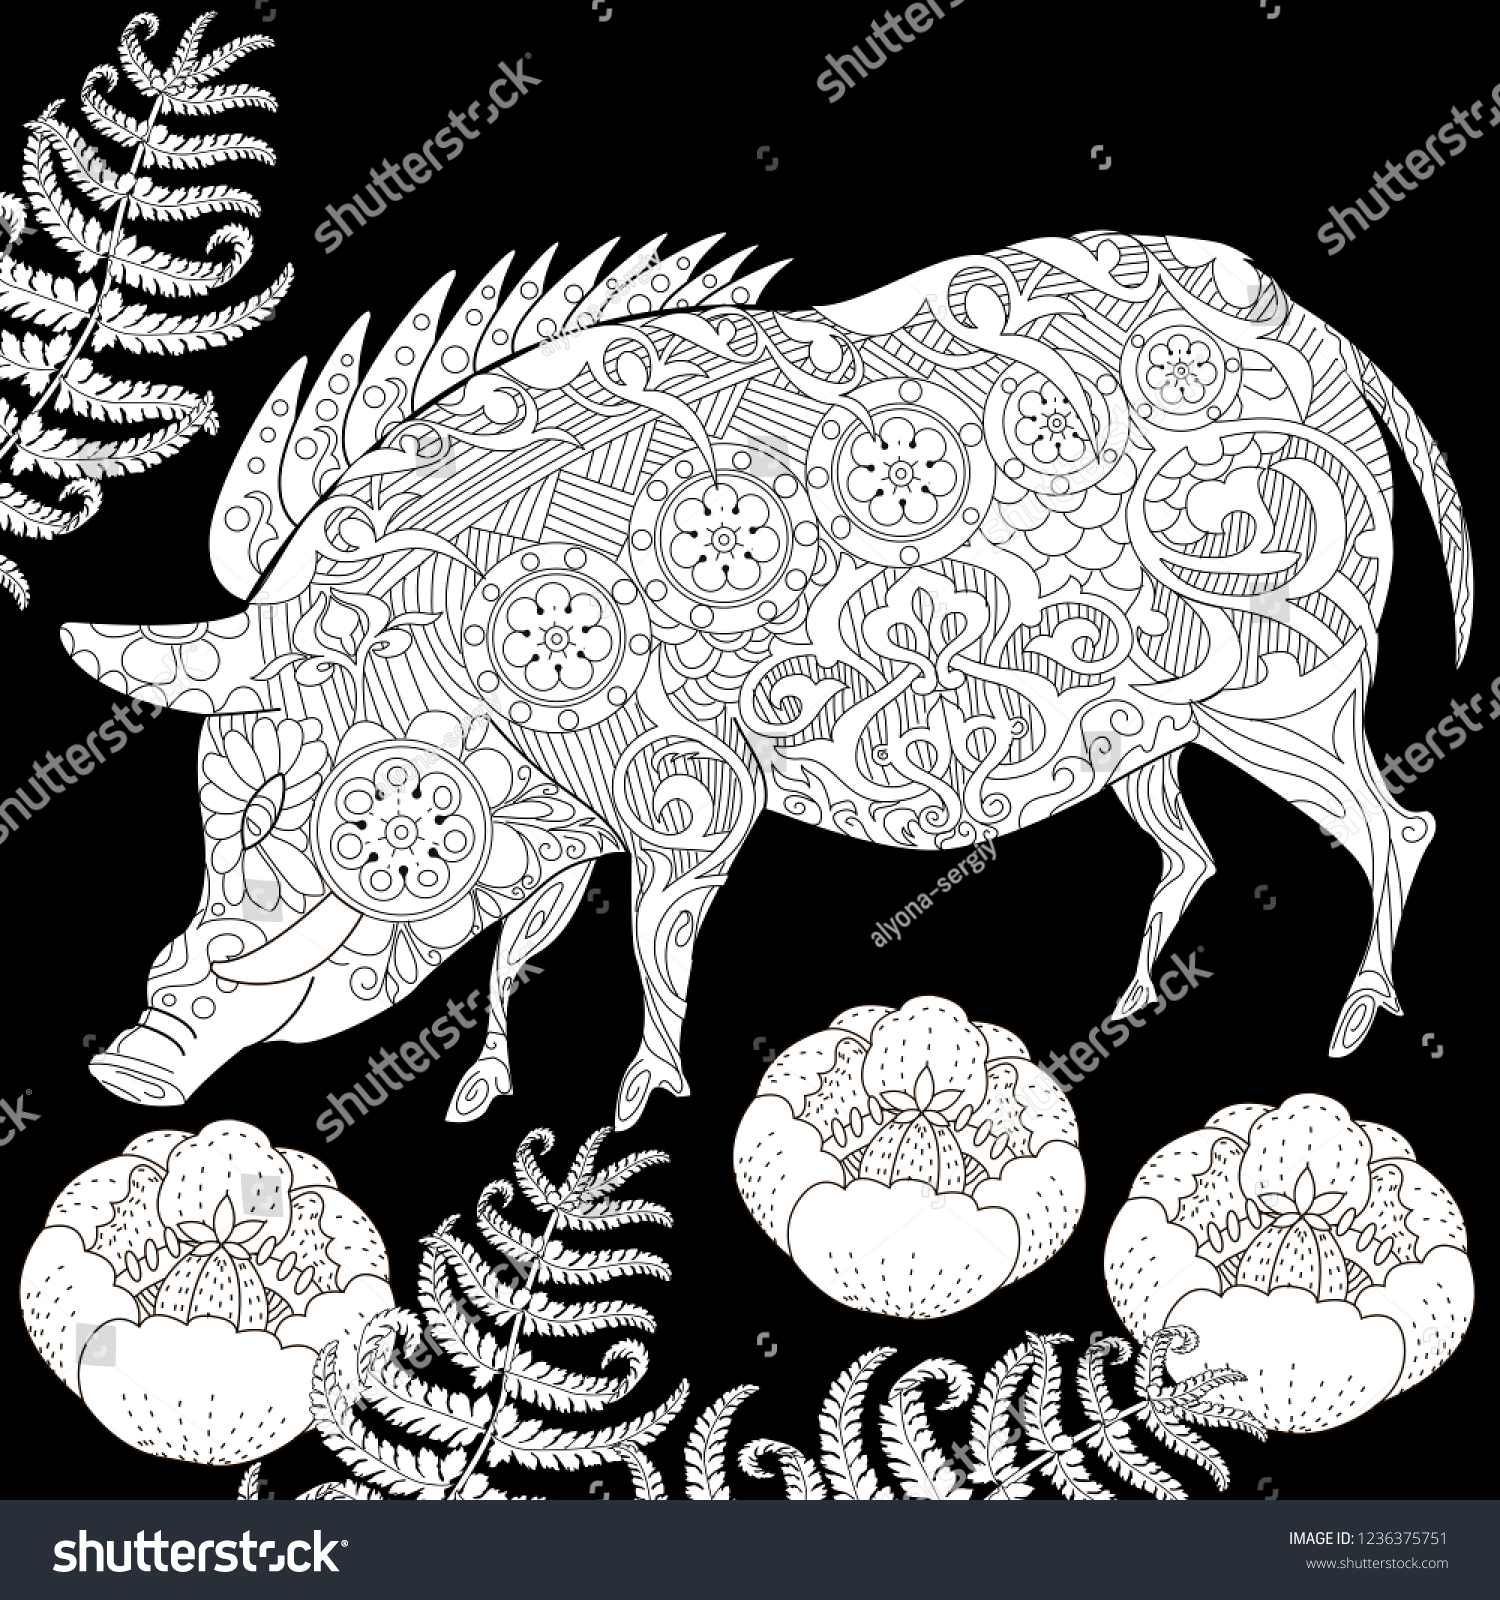 Coloring pages coloring book for adults cute pig 2019 chinese new year symbol